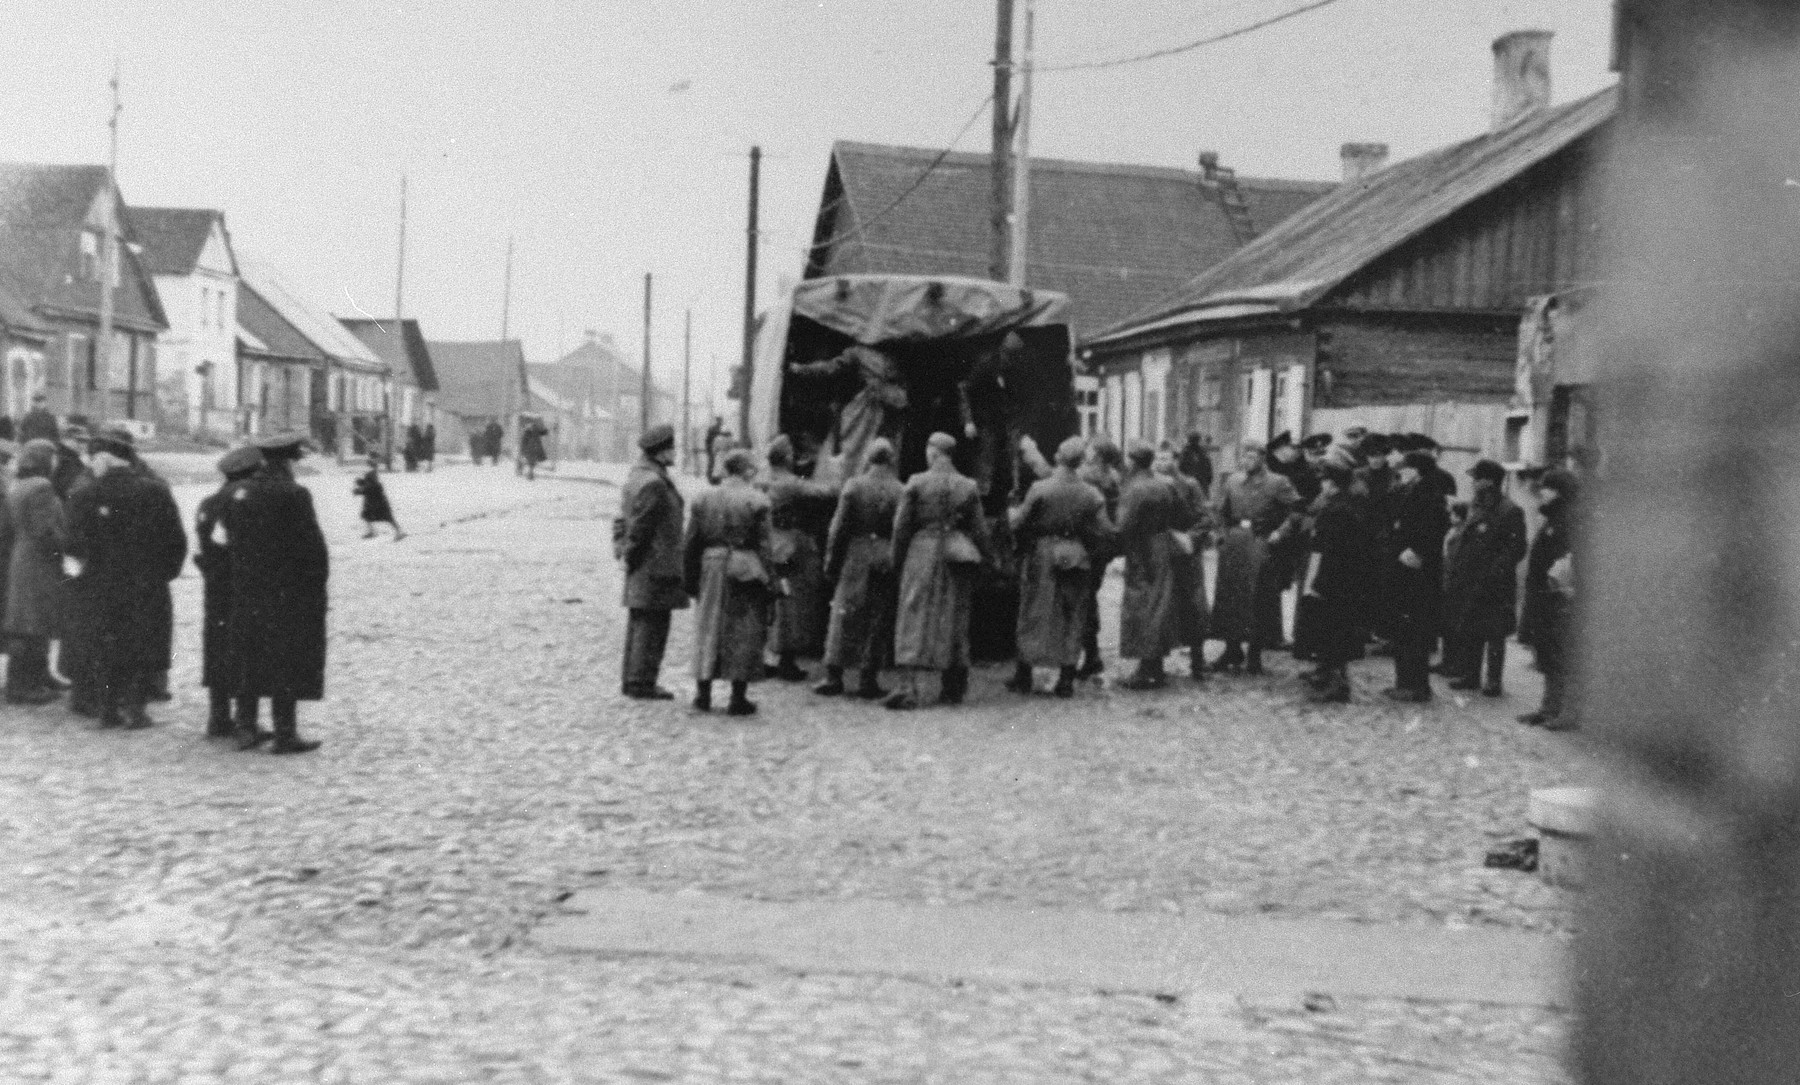 German soldiers prepare for a raid in the Kovno ghetto, as some Jewish residents look on.